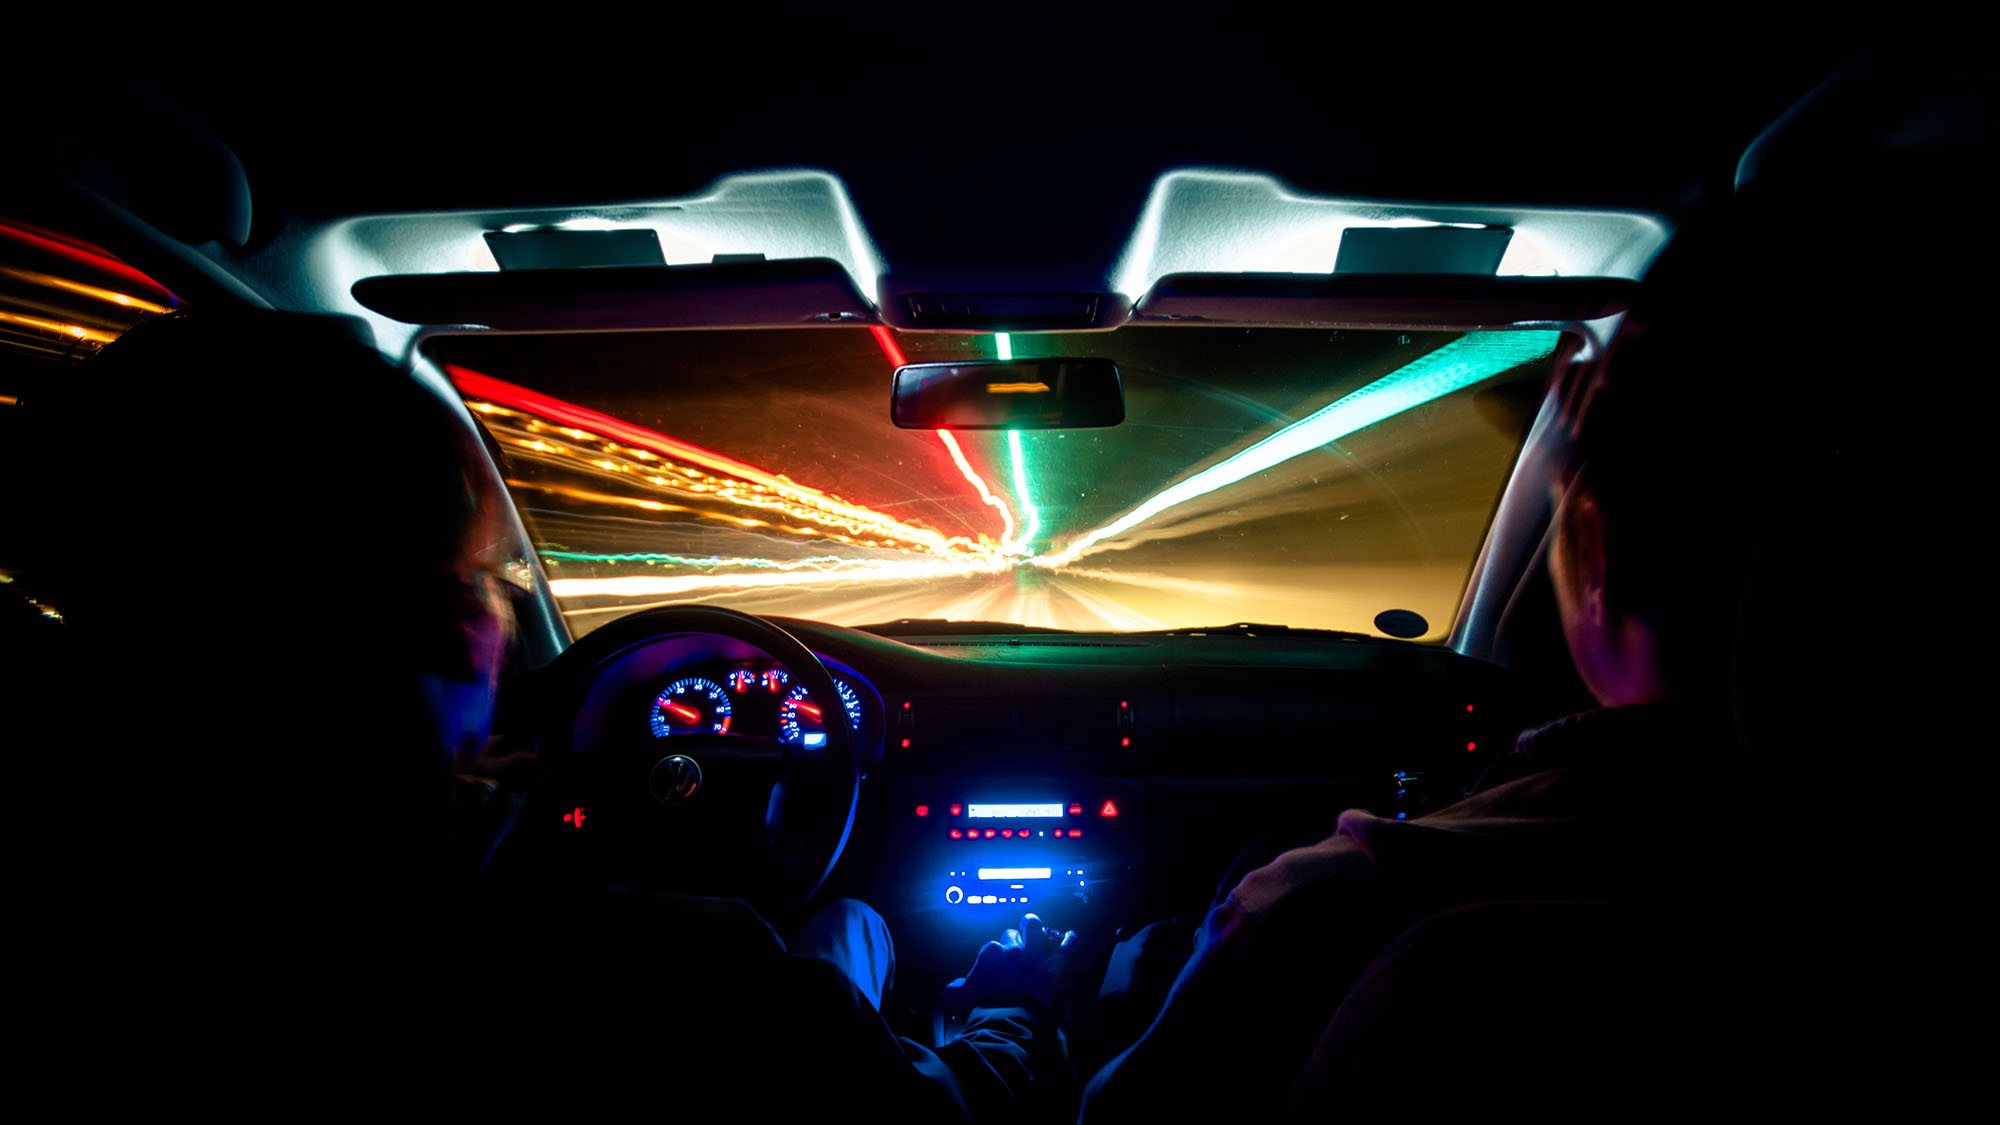 Driving by night